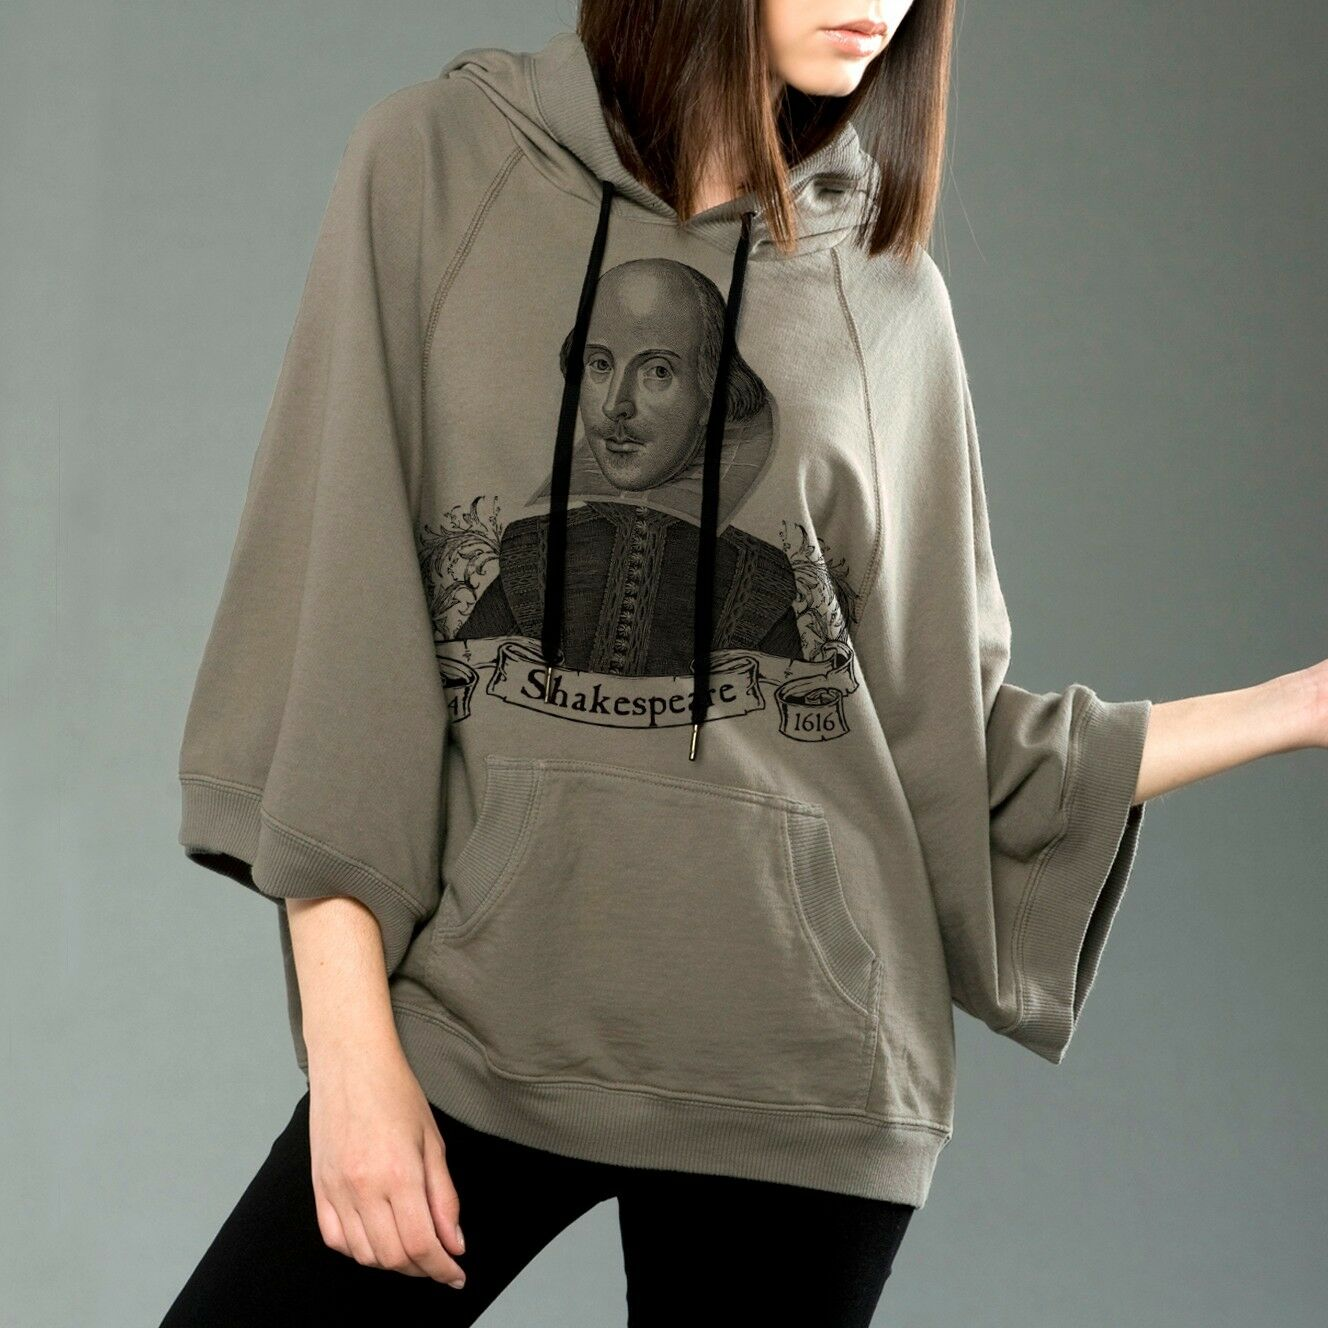 William William William Shakespeare Poncho Hoodie Tartx S - XL 789813